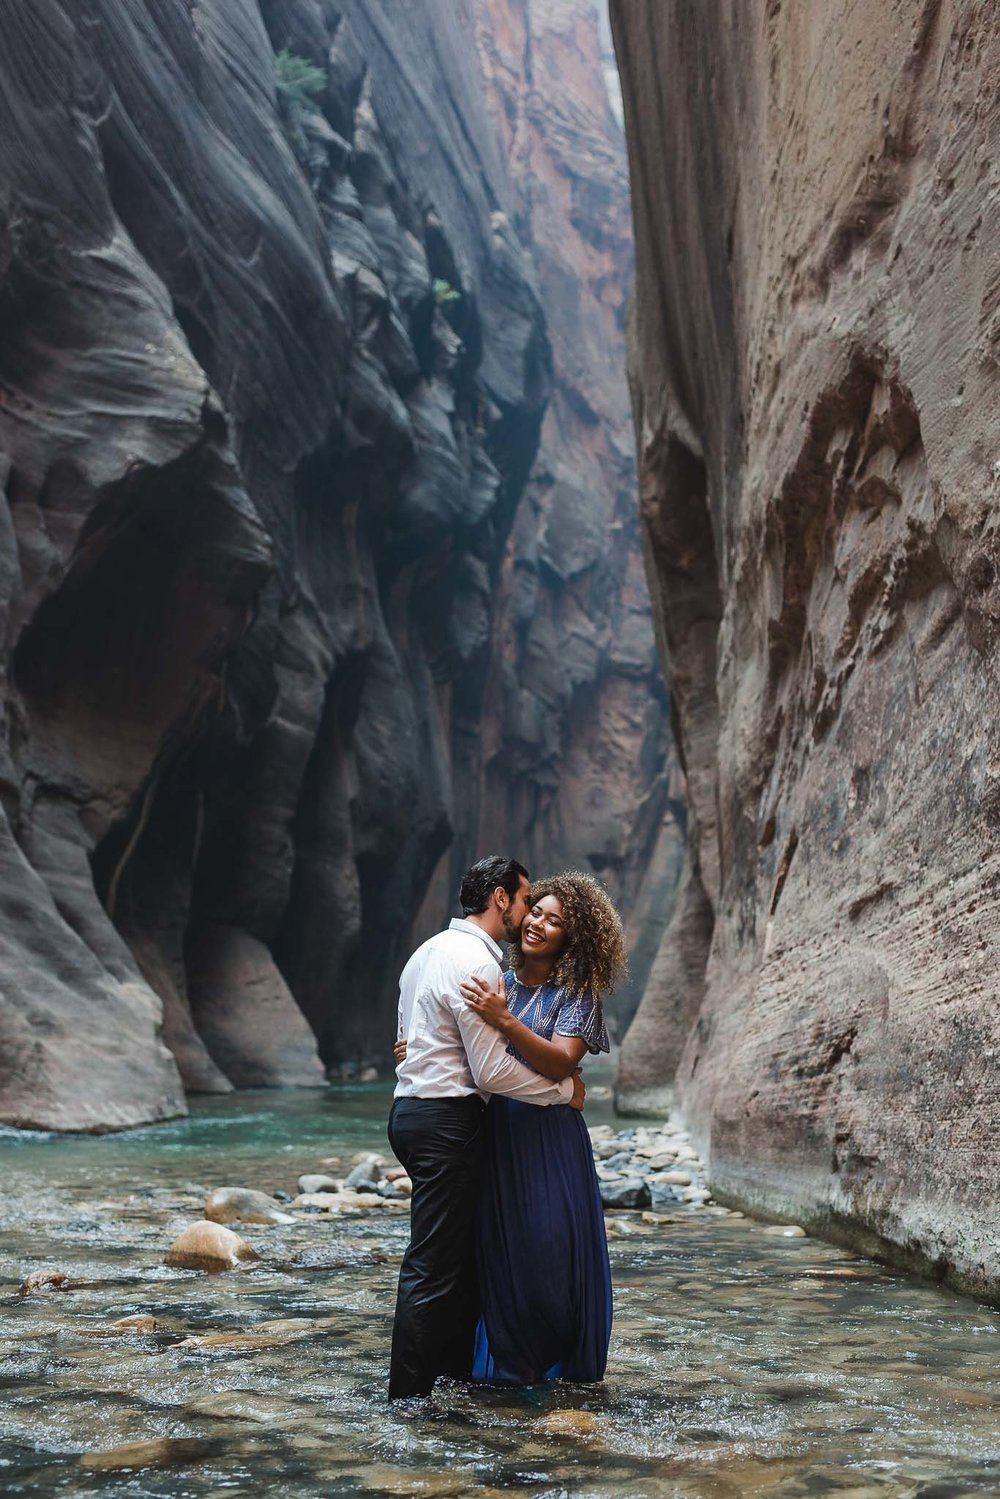 Couple stand together in the Virgin River in the Narrows at Zion National Park